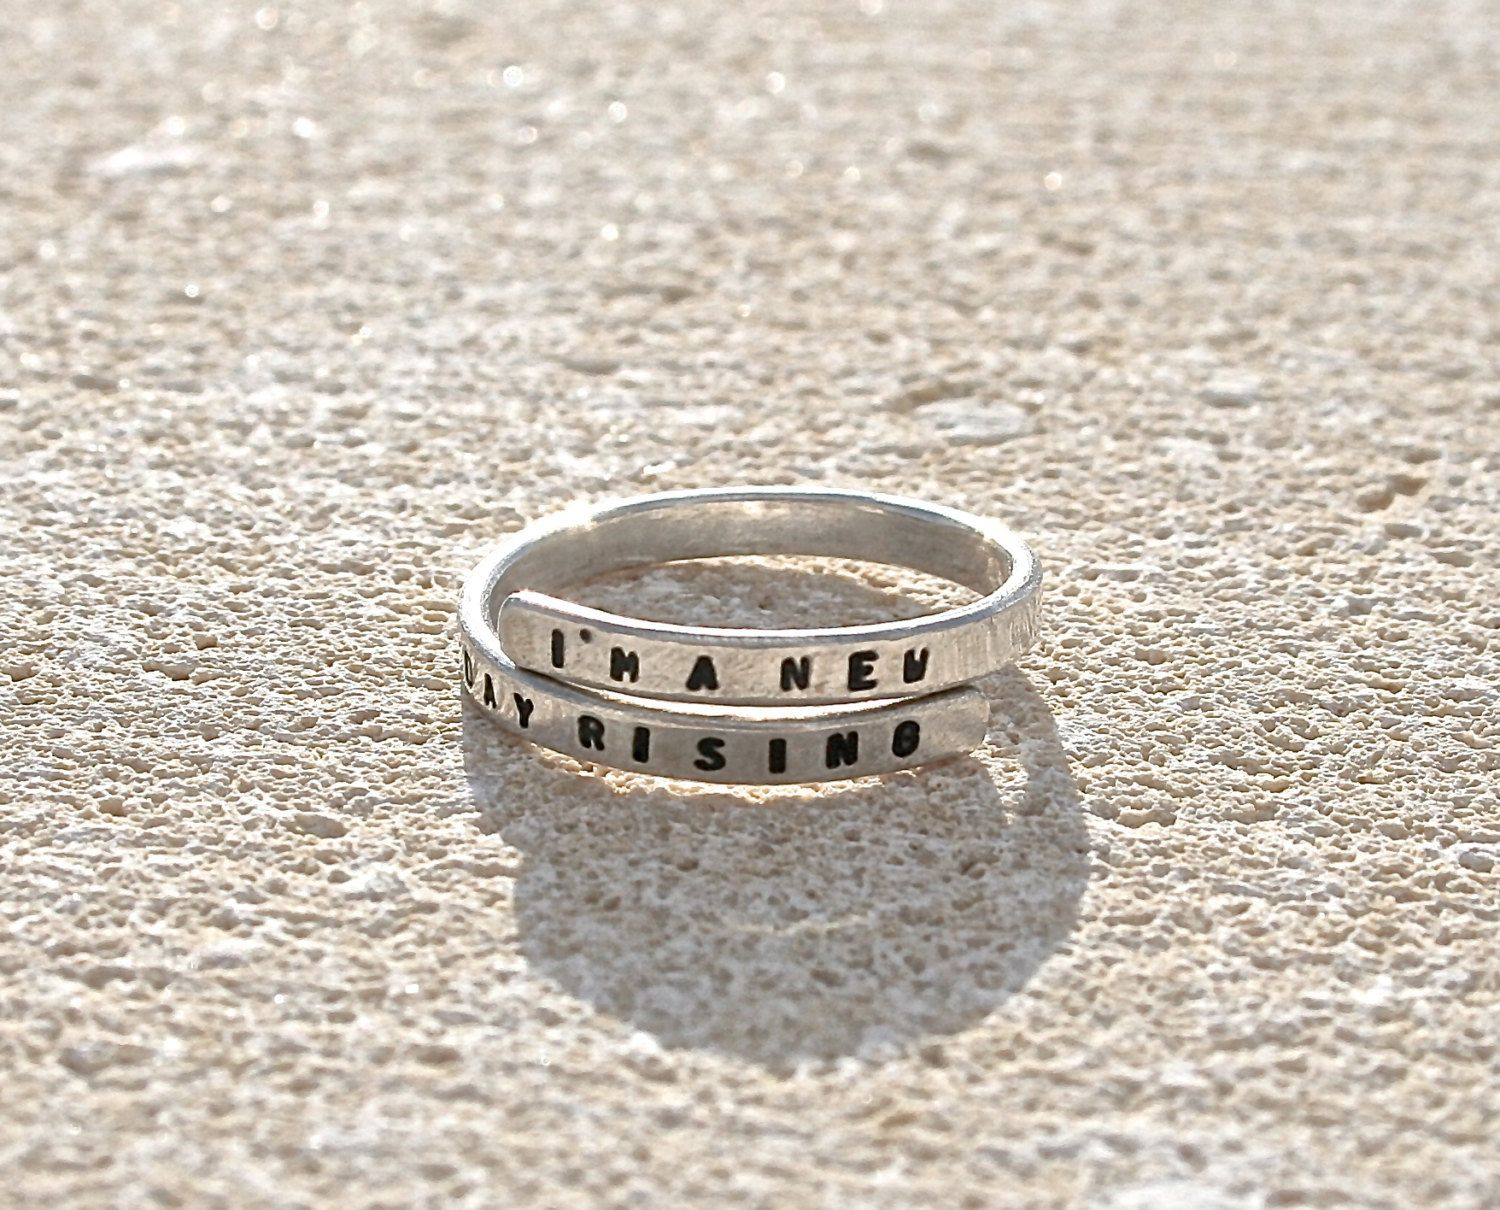 Handmade Lyric Ring Im a new day rising Sterling Silver 925